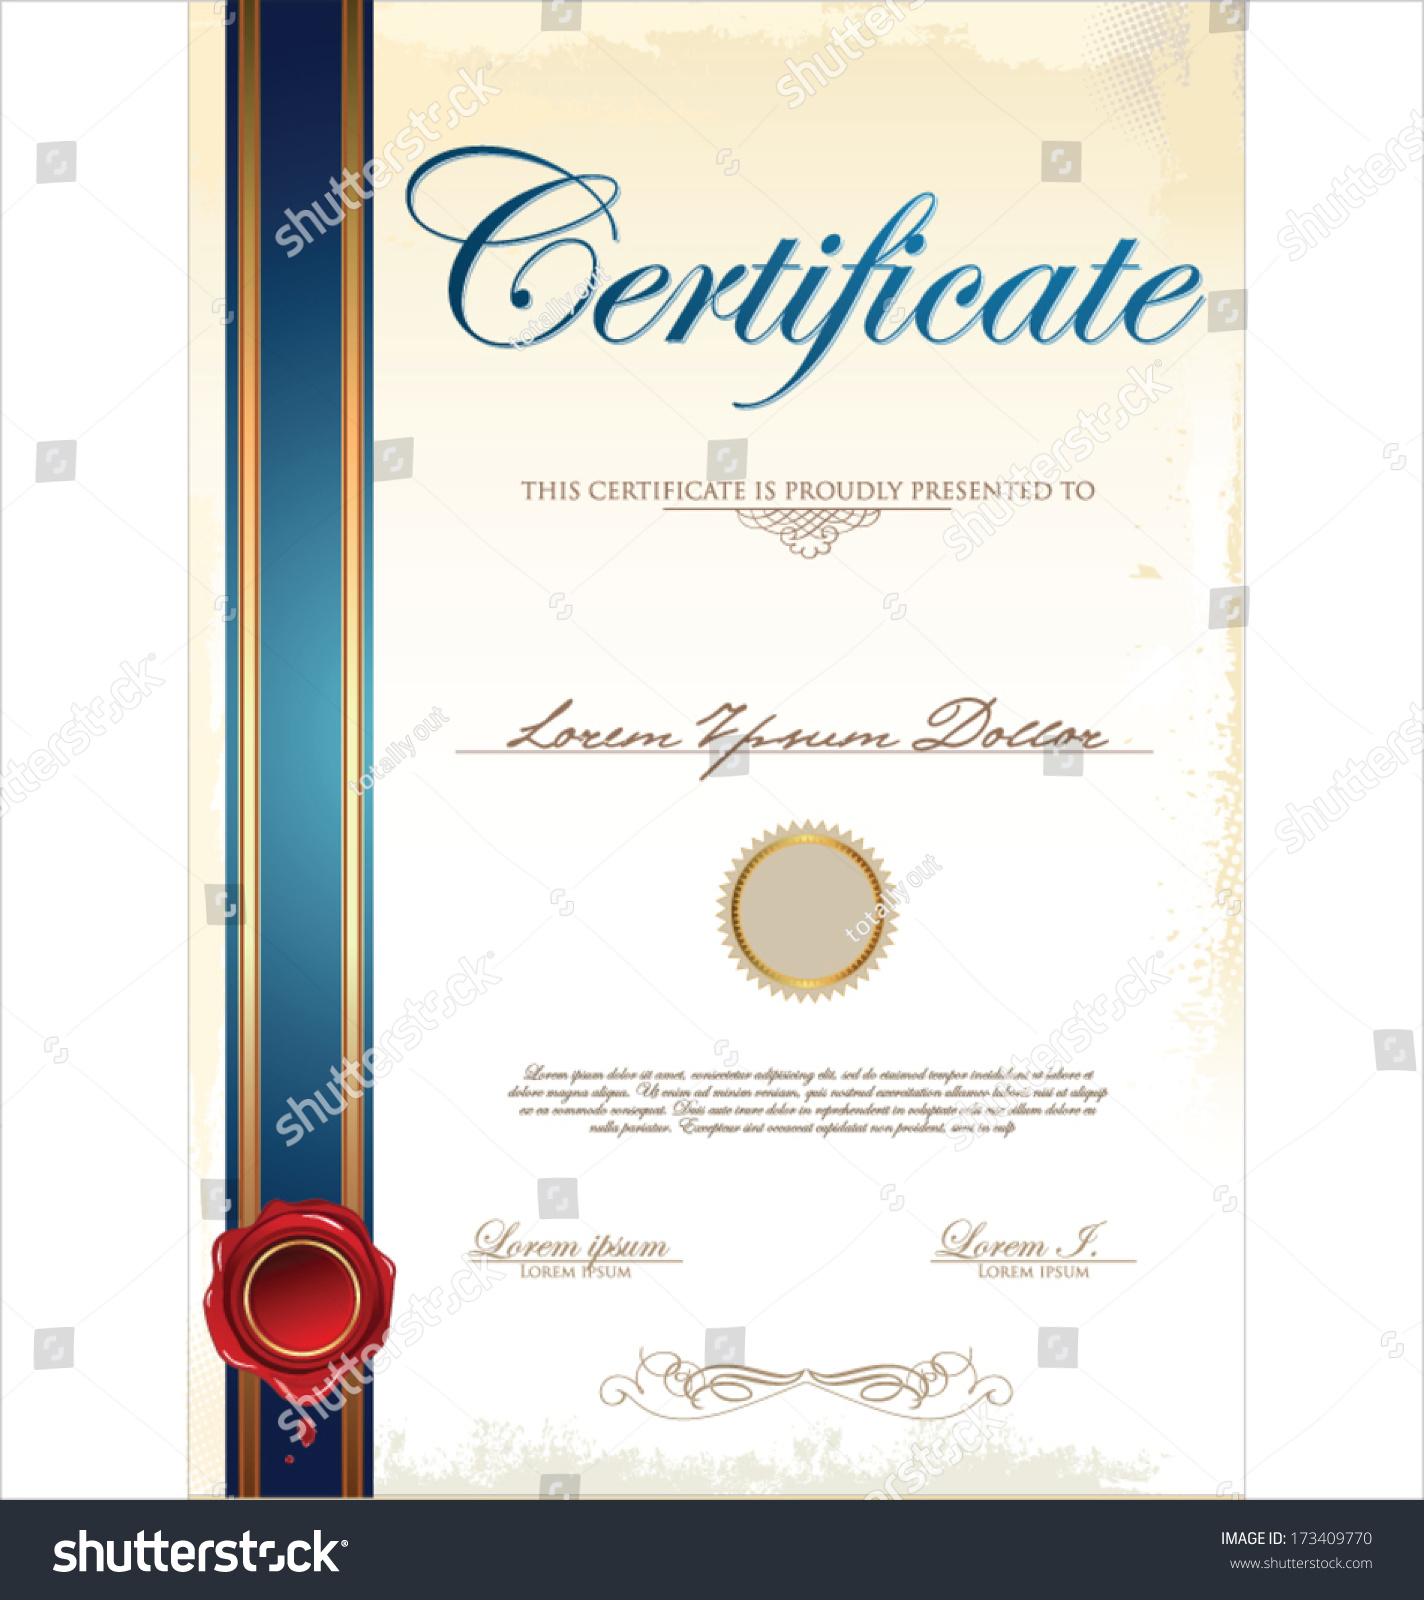 Certificate template stock vector 173409770 shutterstock for Certificate design template